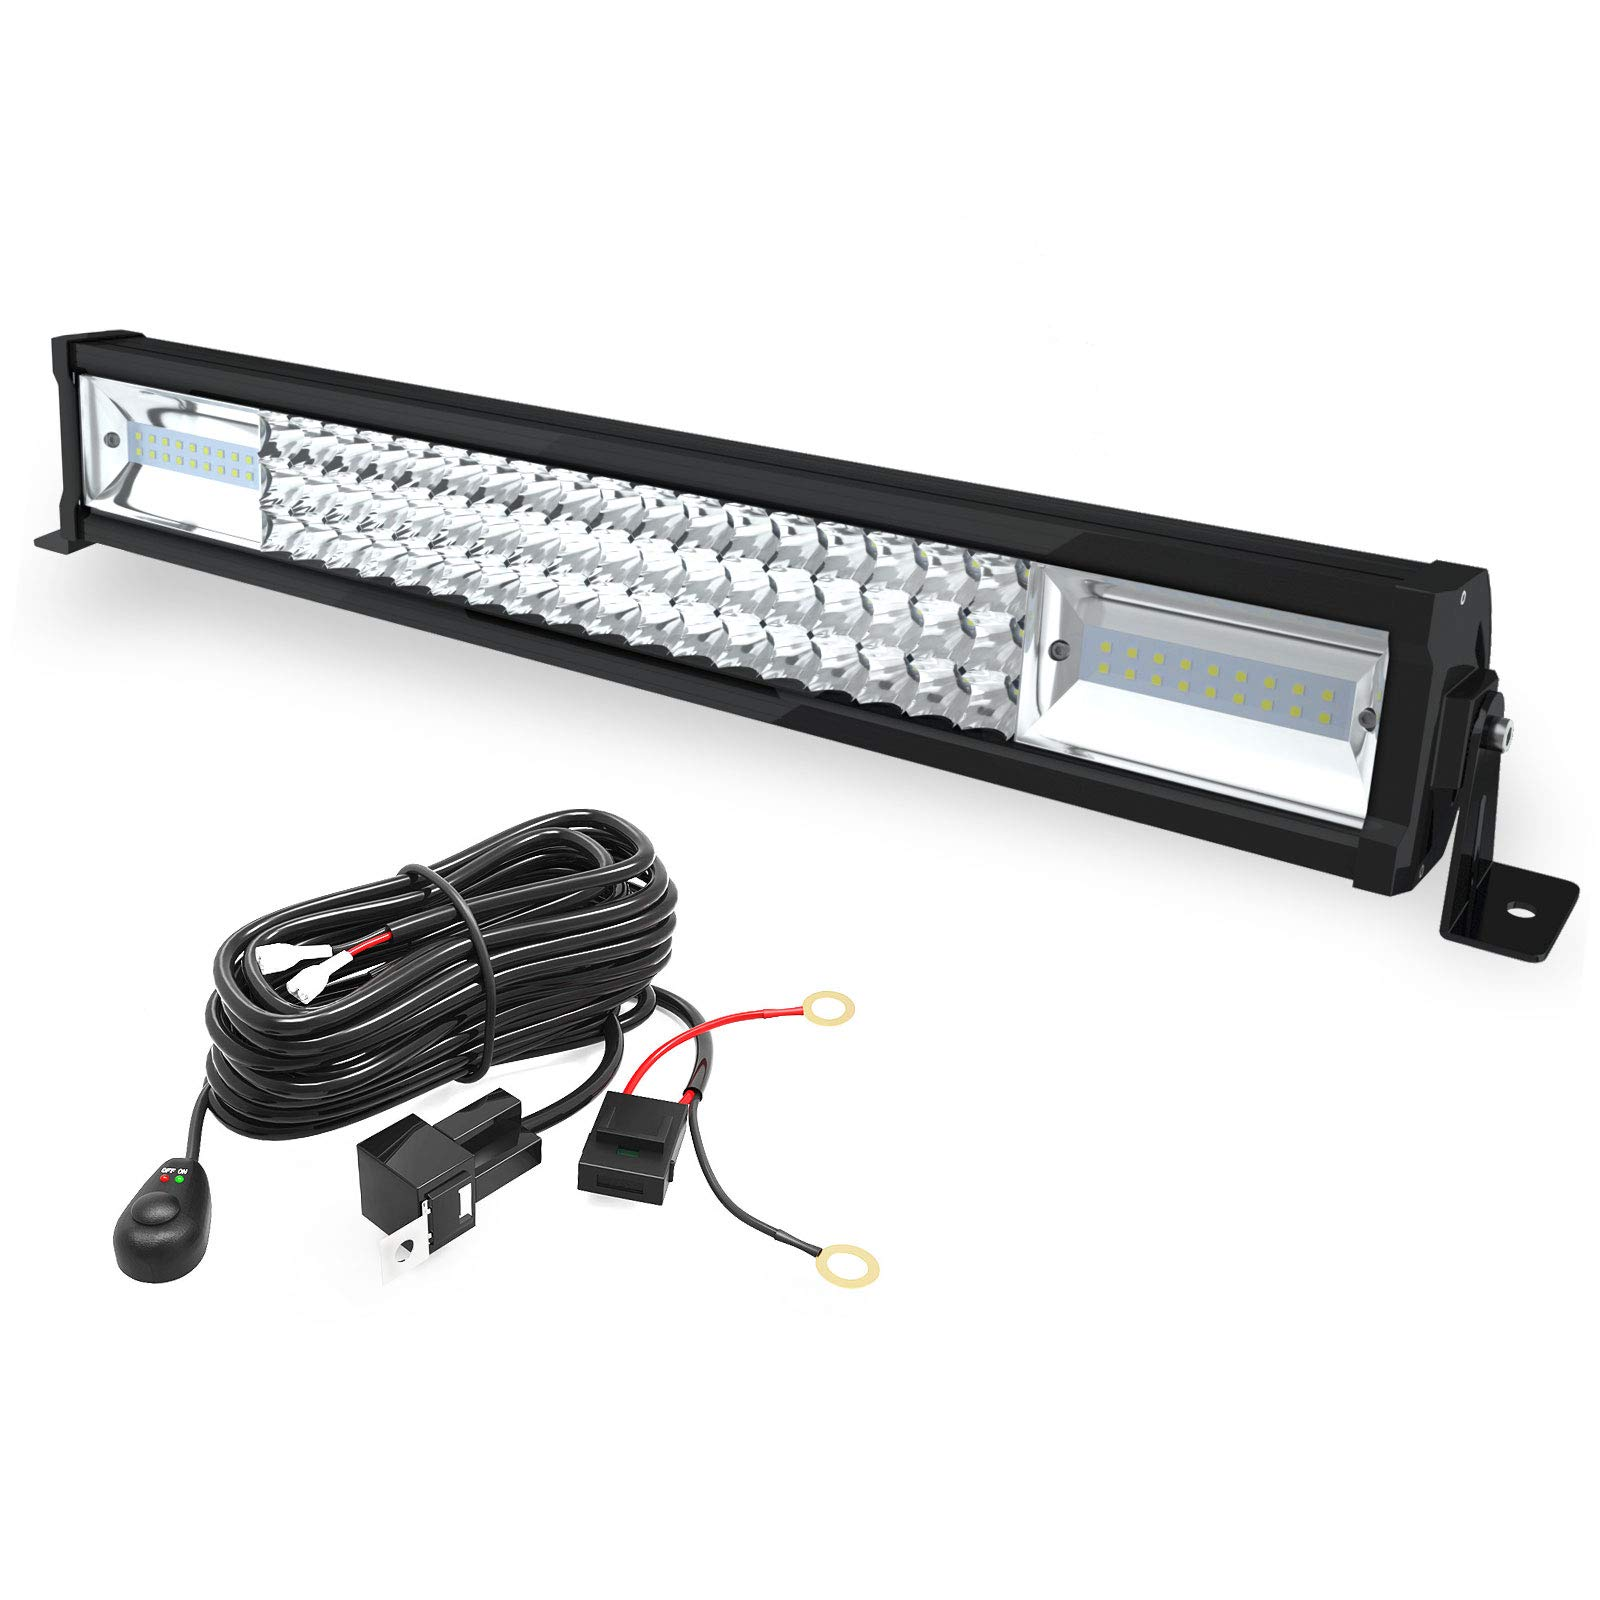 LED Light Bar, YITAMOTOR 270W, 22 Inch Light Bar Spot Light Tri-Row Light Bar Wiring Harness compatible for SUV ATV Truck Pickup Boat 4WD 4X4 Off road Light Fog Driving Light, 20,000lm 3 Year Warranty